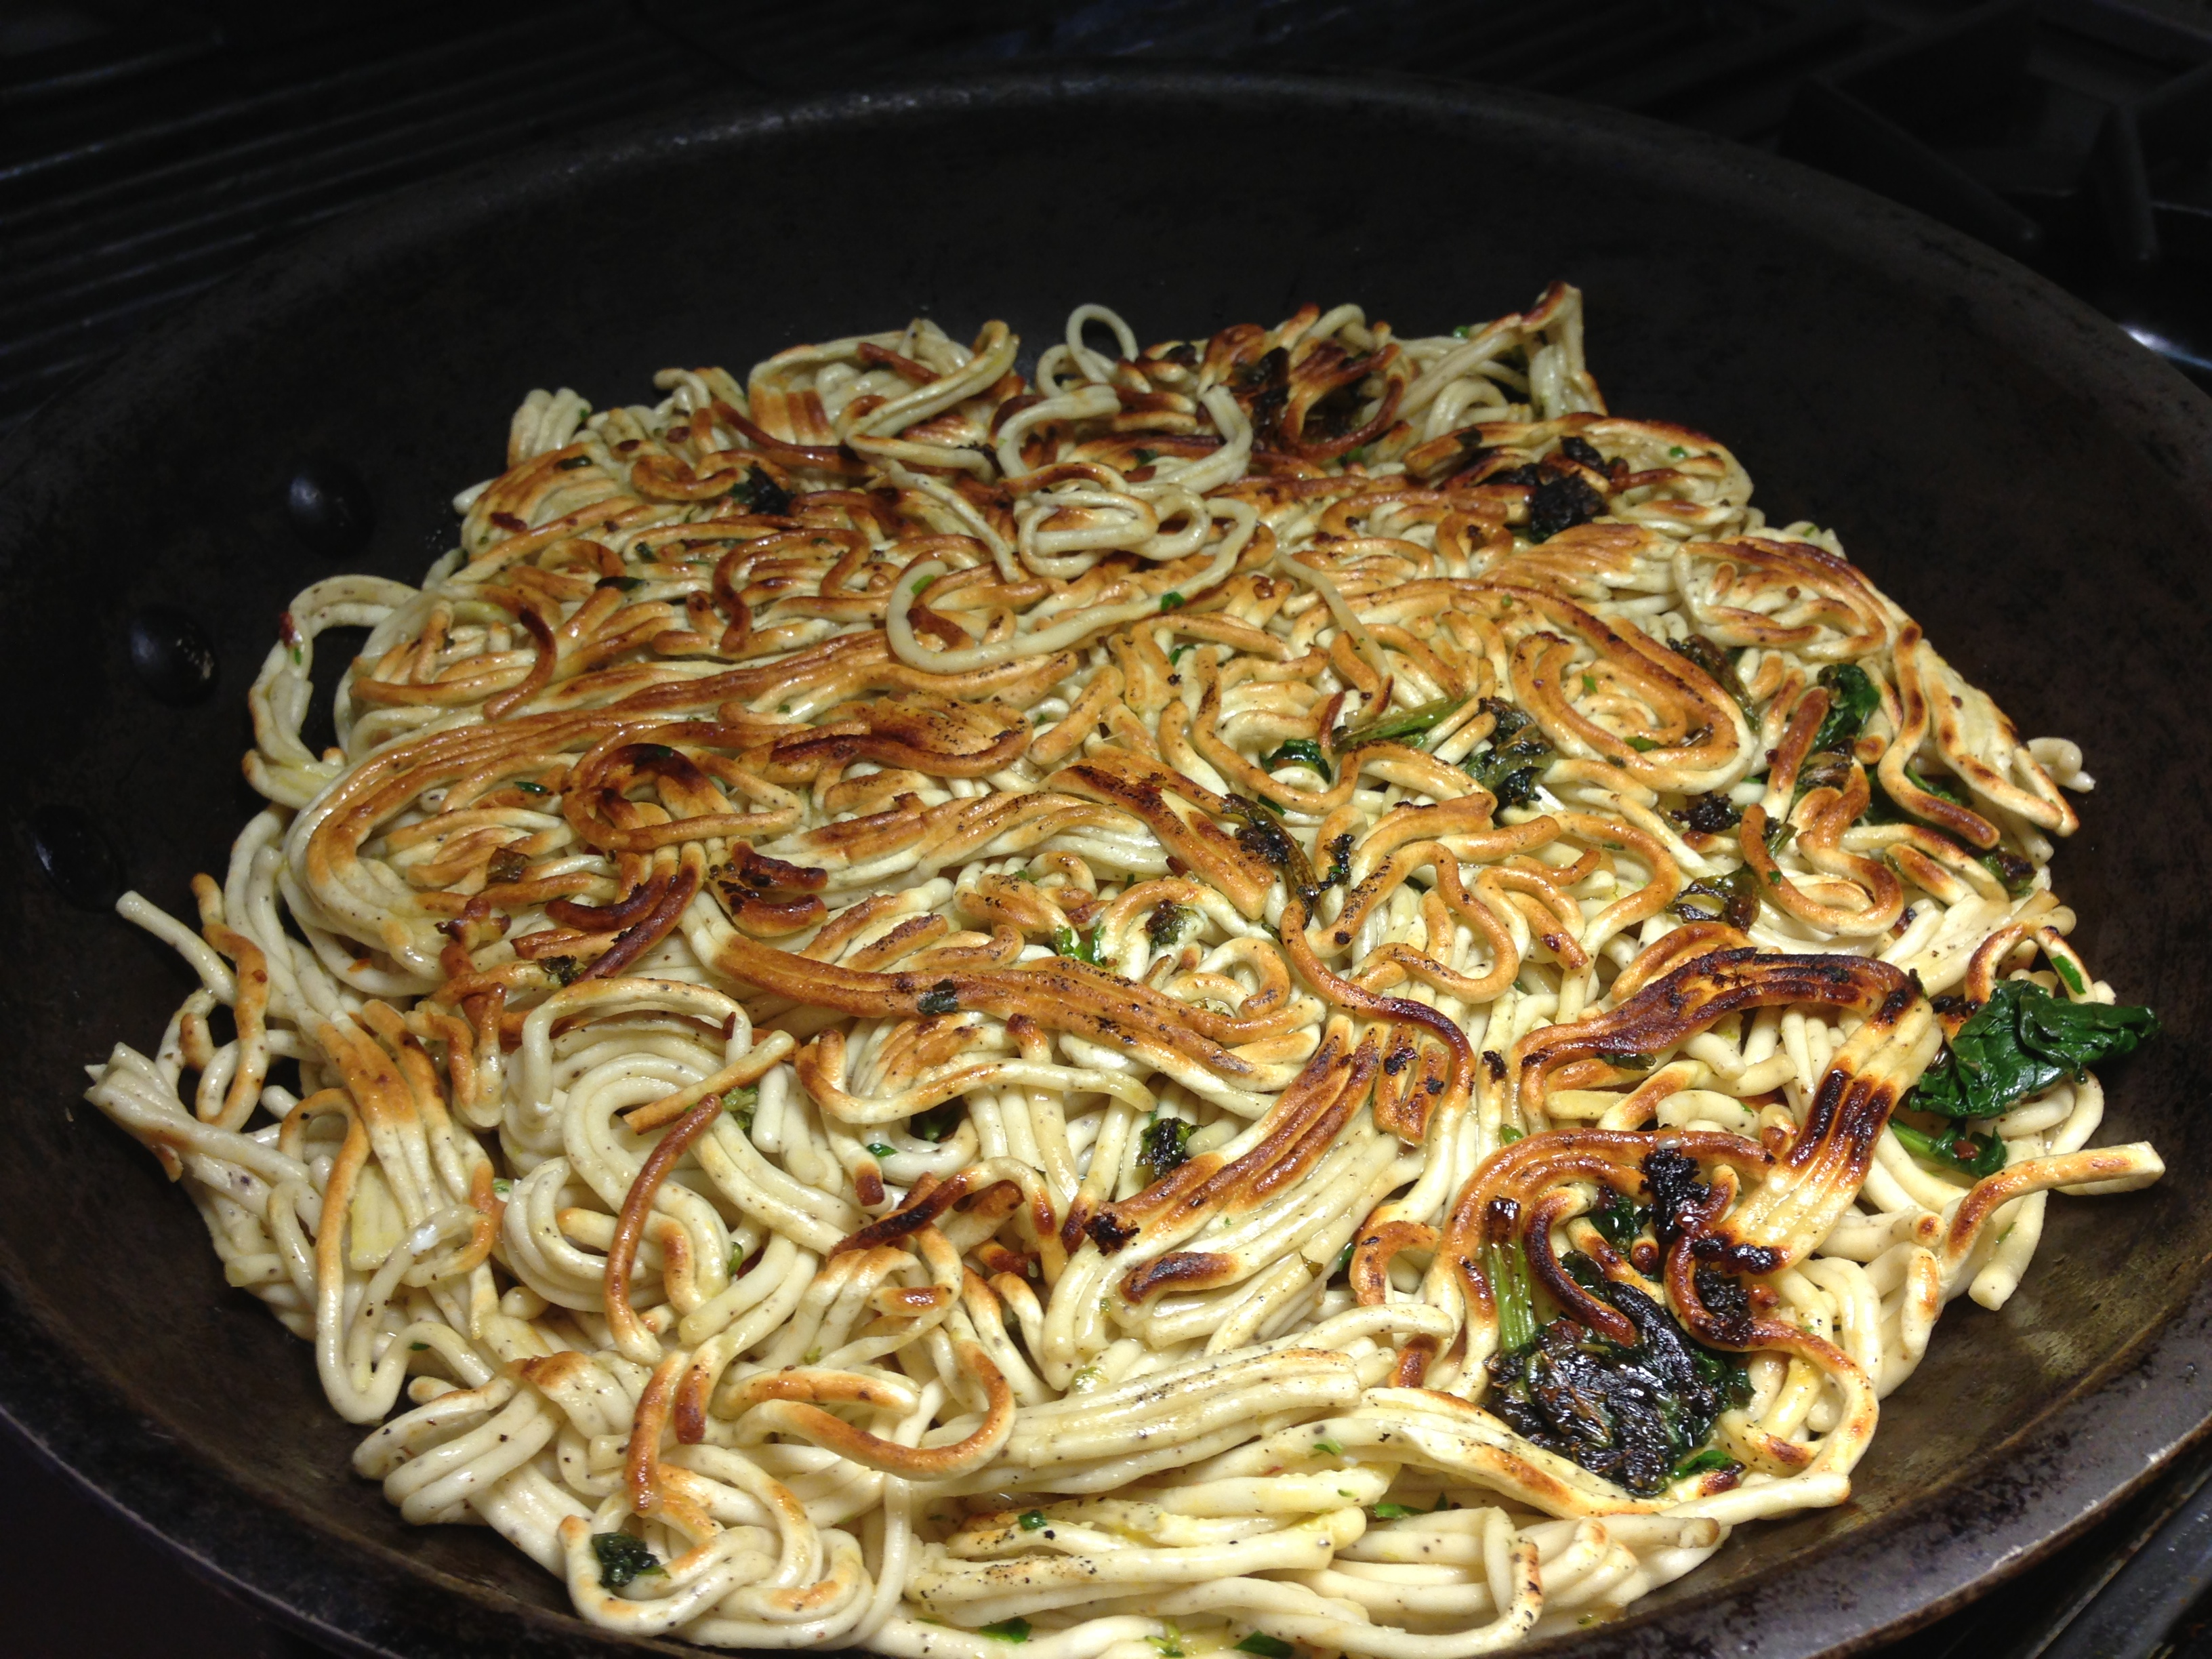 How to fry pasta in a frying pan